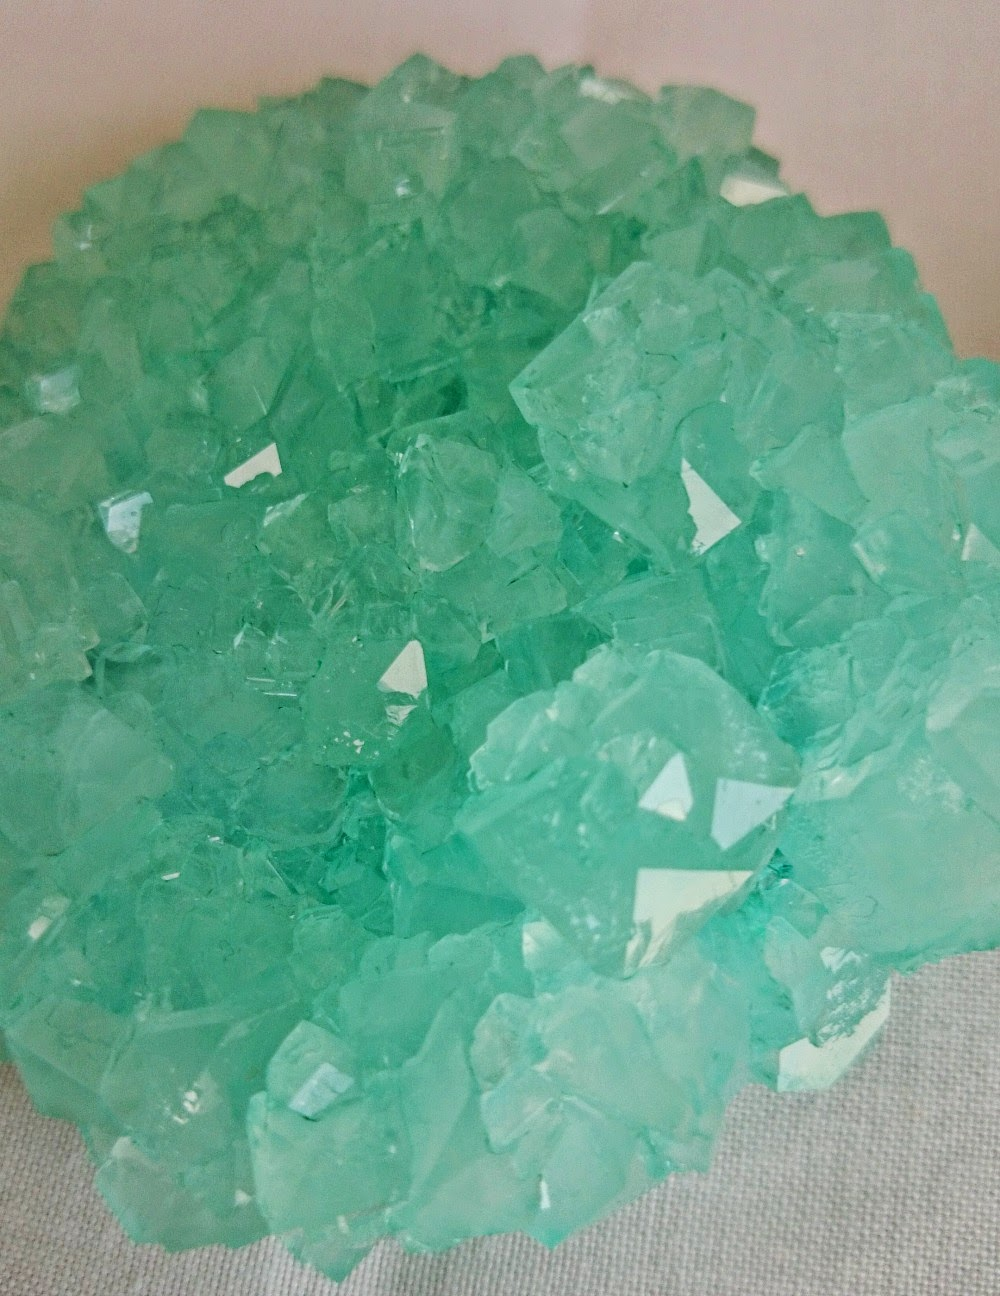 massing grown crystals essay Order plagiarism free custom written essay all crystals in msc crystals are grown from a melt, that contains impurities of up to 30 wt.